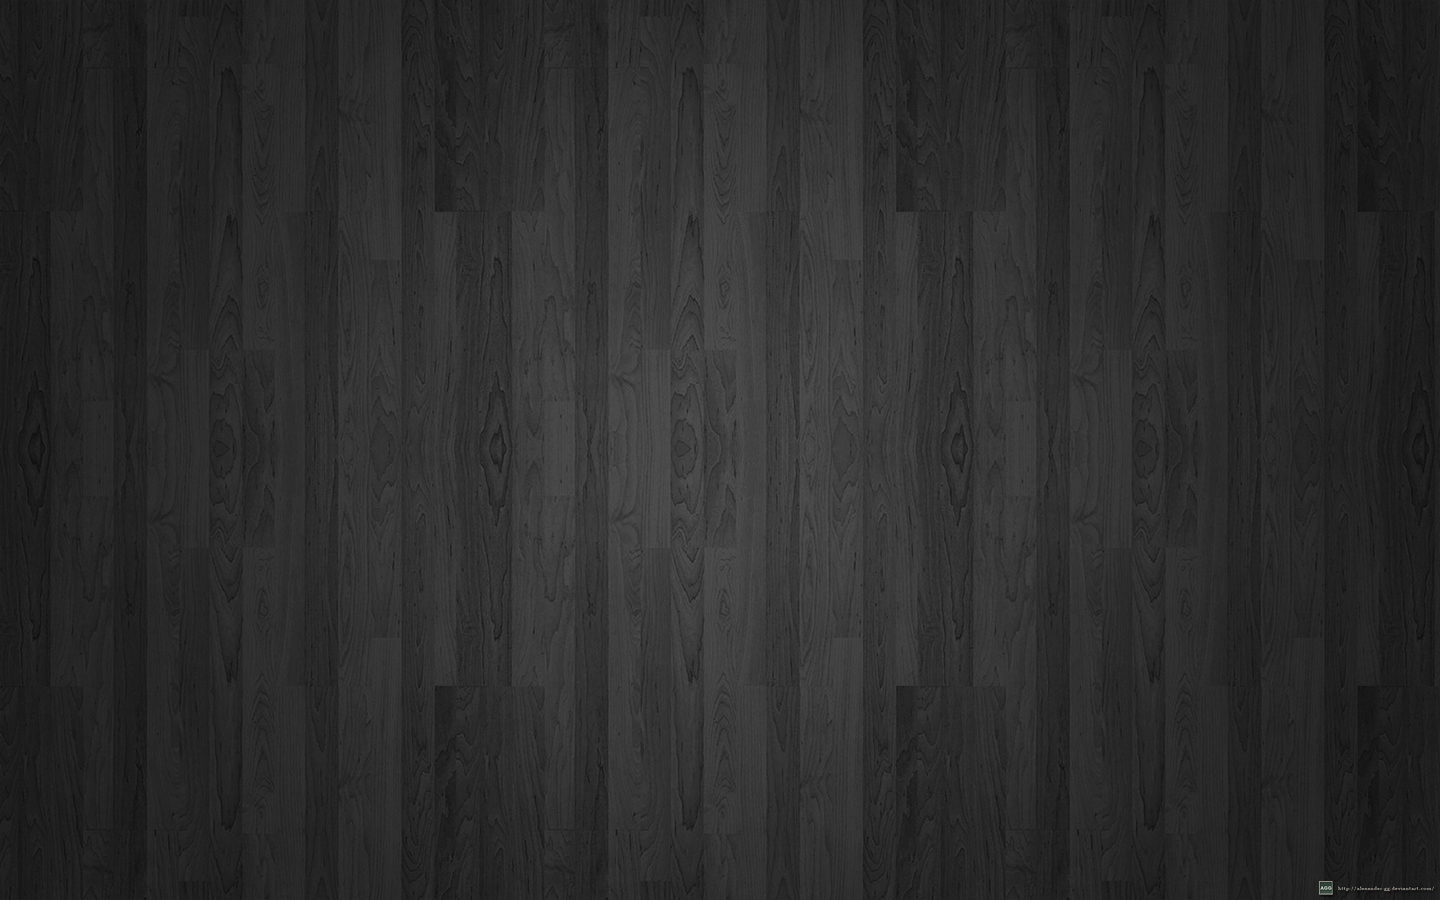 Wood Black 1440 900  2. Wood Black 1440 900  2    Awesome Wallpapers